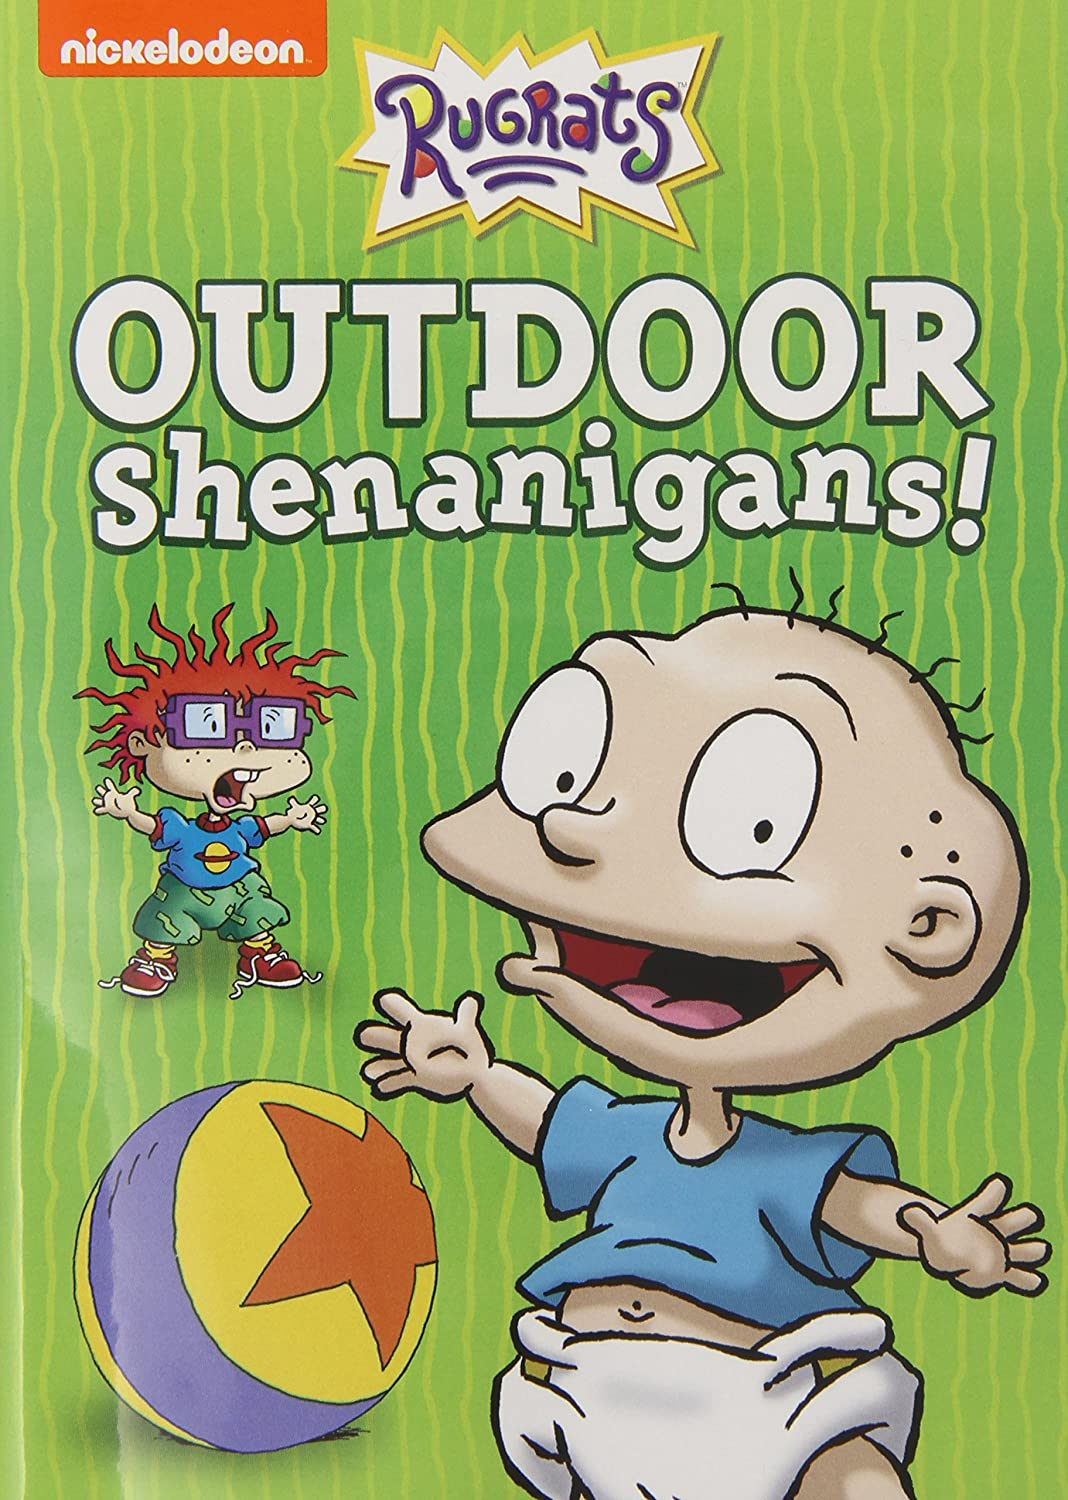 http://www.amazon.com/Rugrats-Shenanigans-Artist-Not-Provided/dp/B00J5G1NTW/